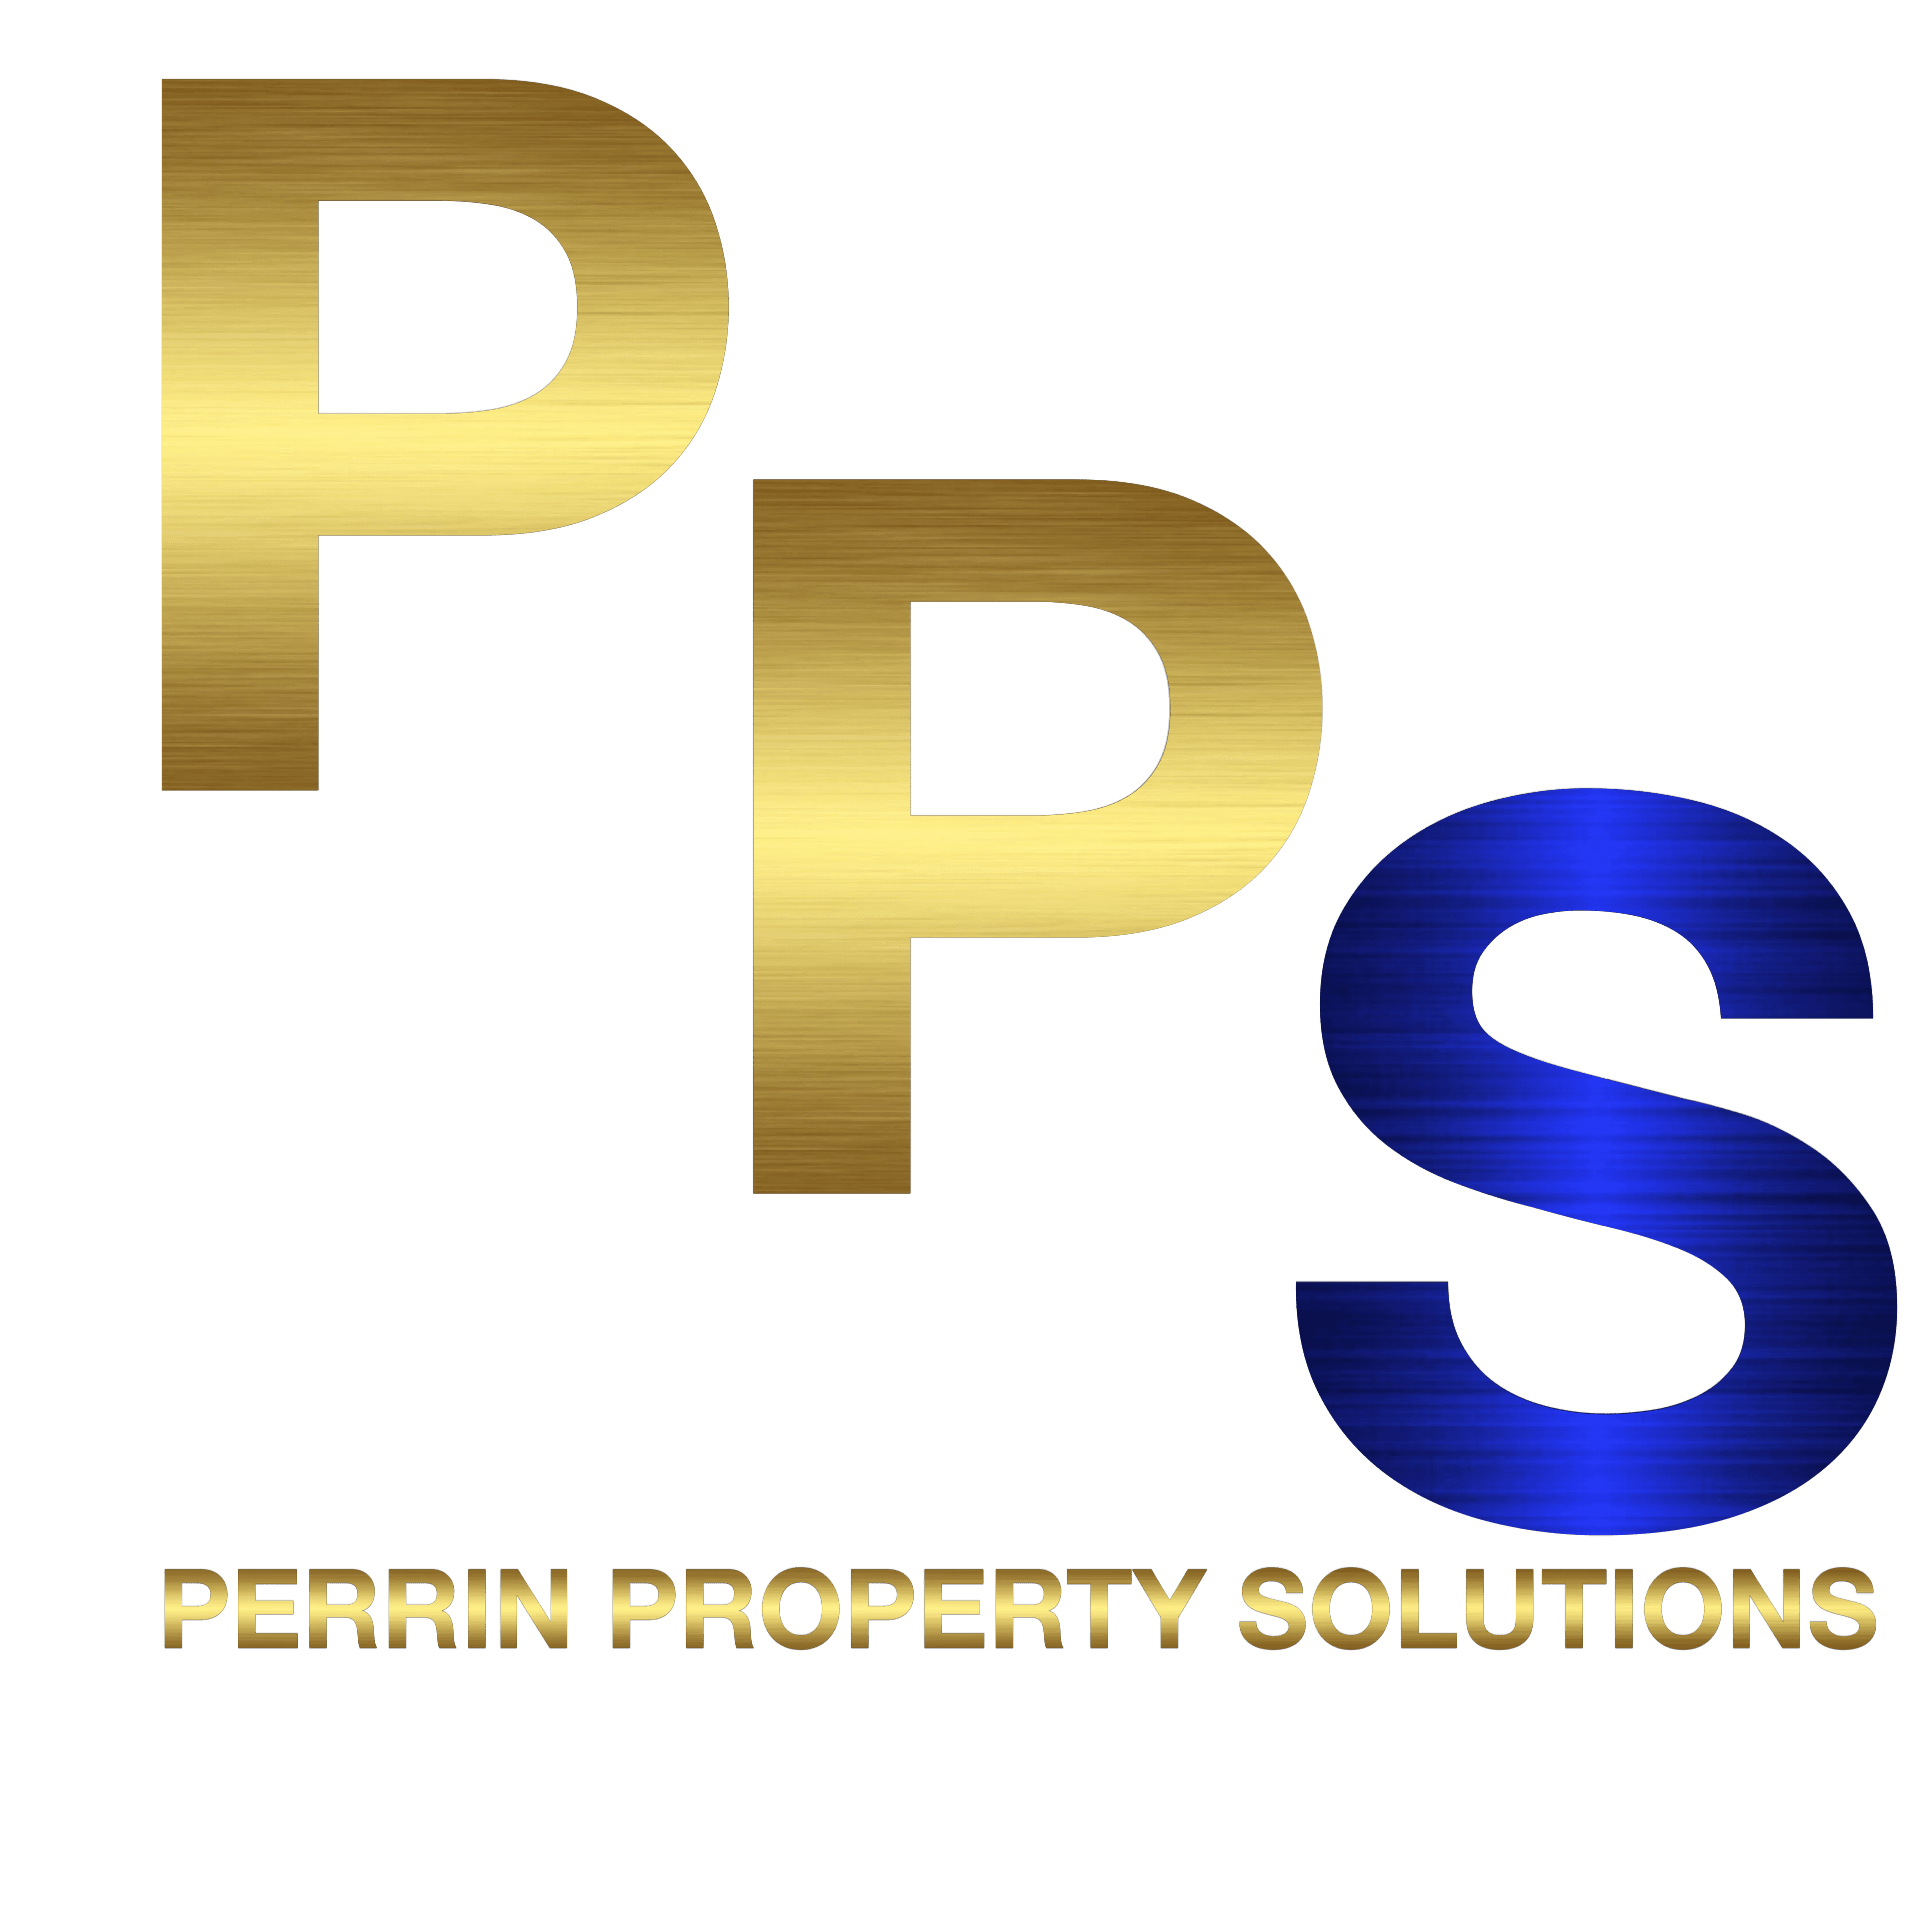 Perrin Property Solutions